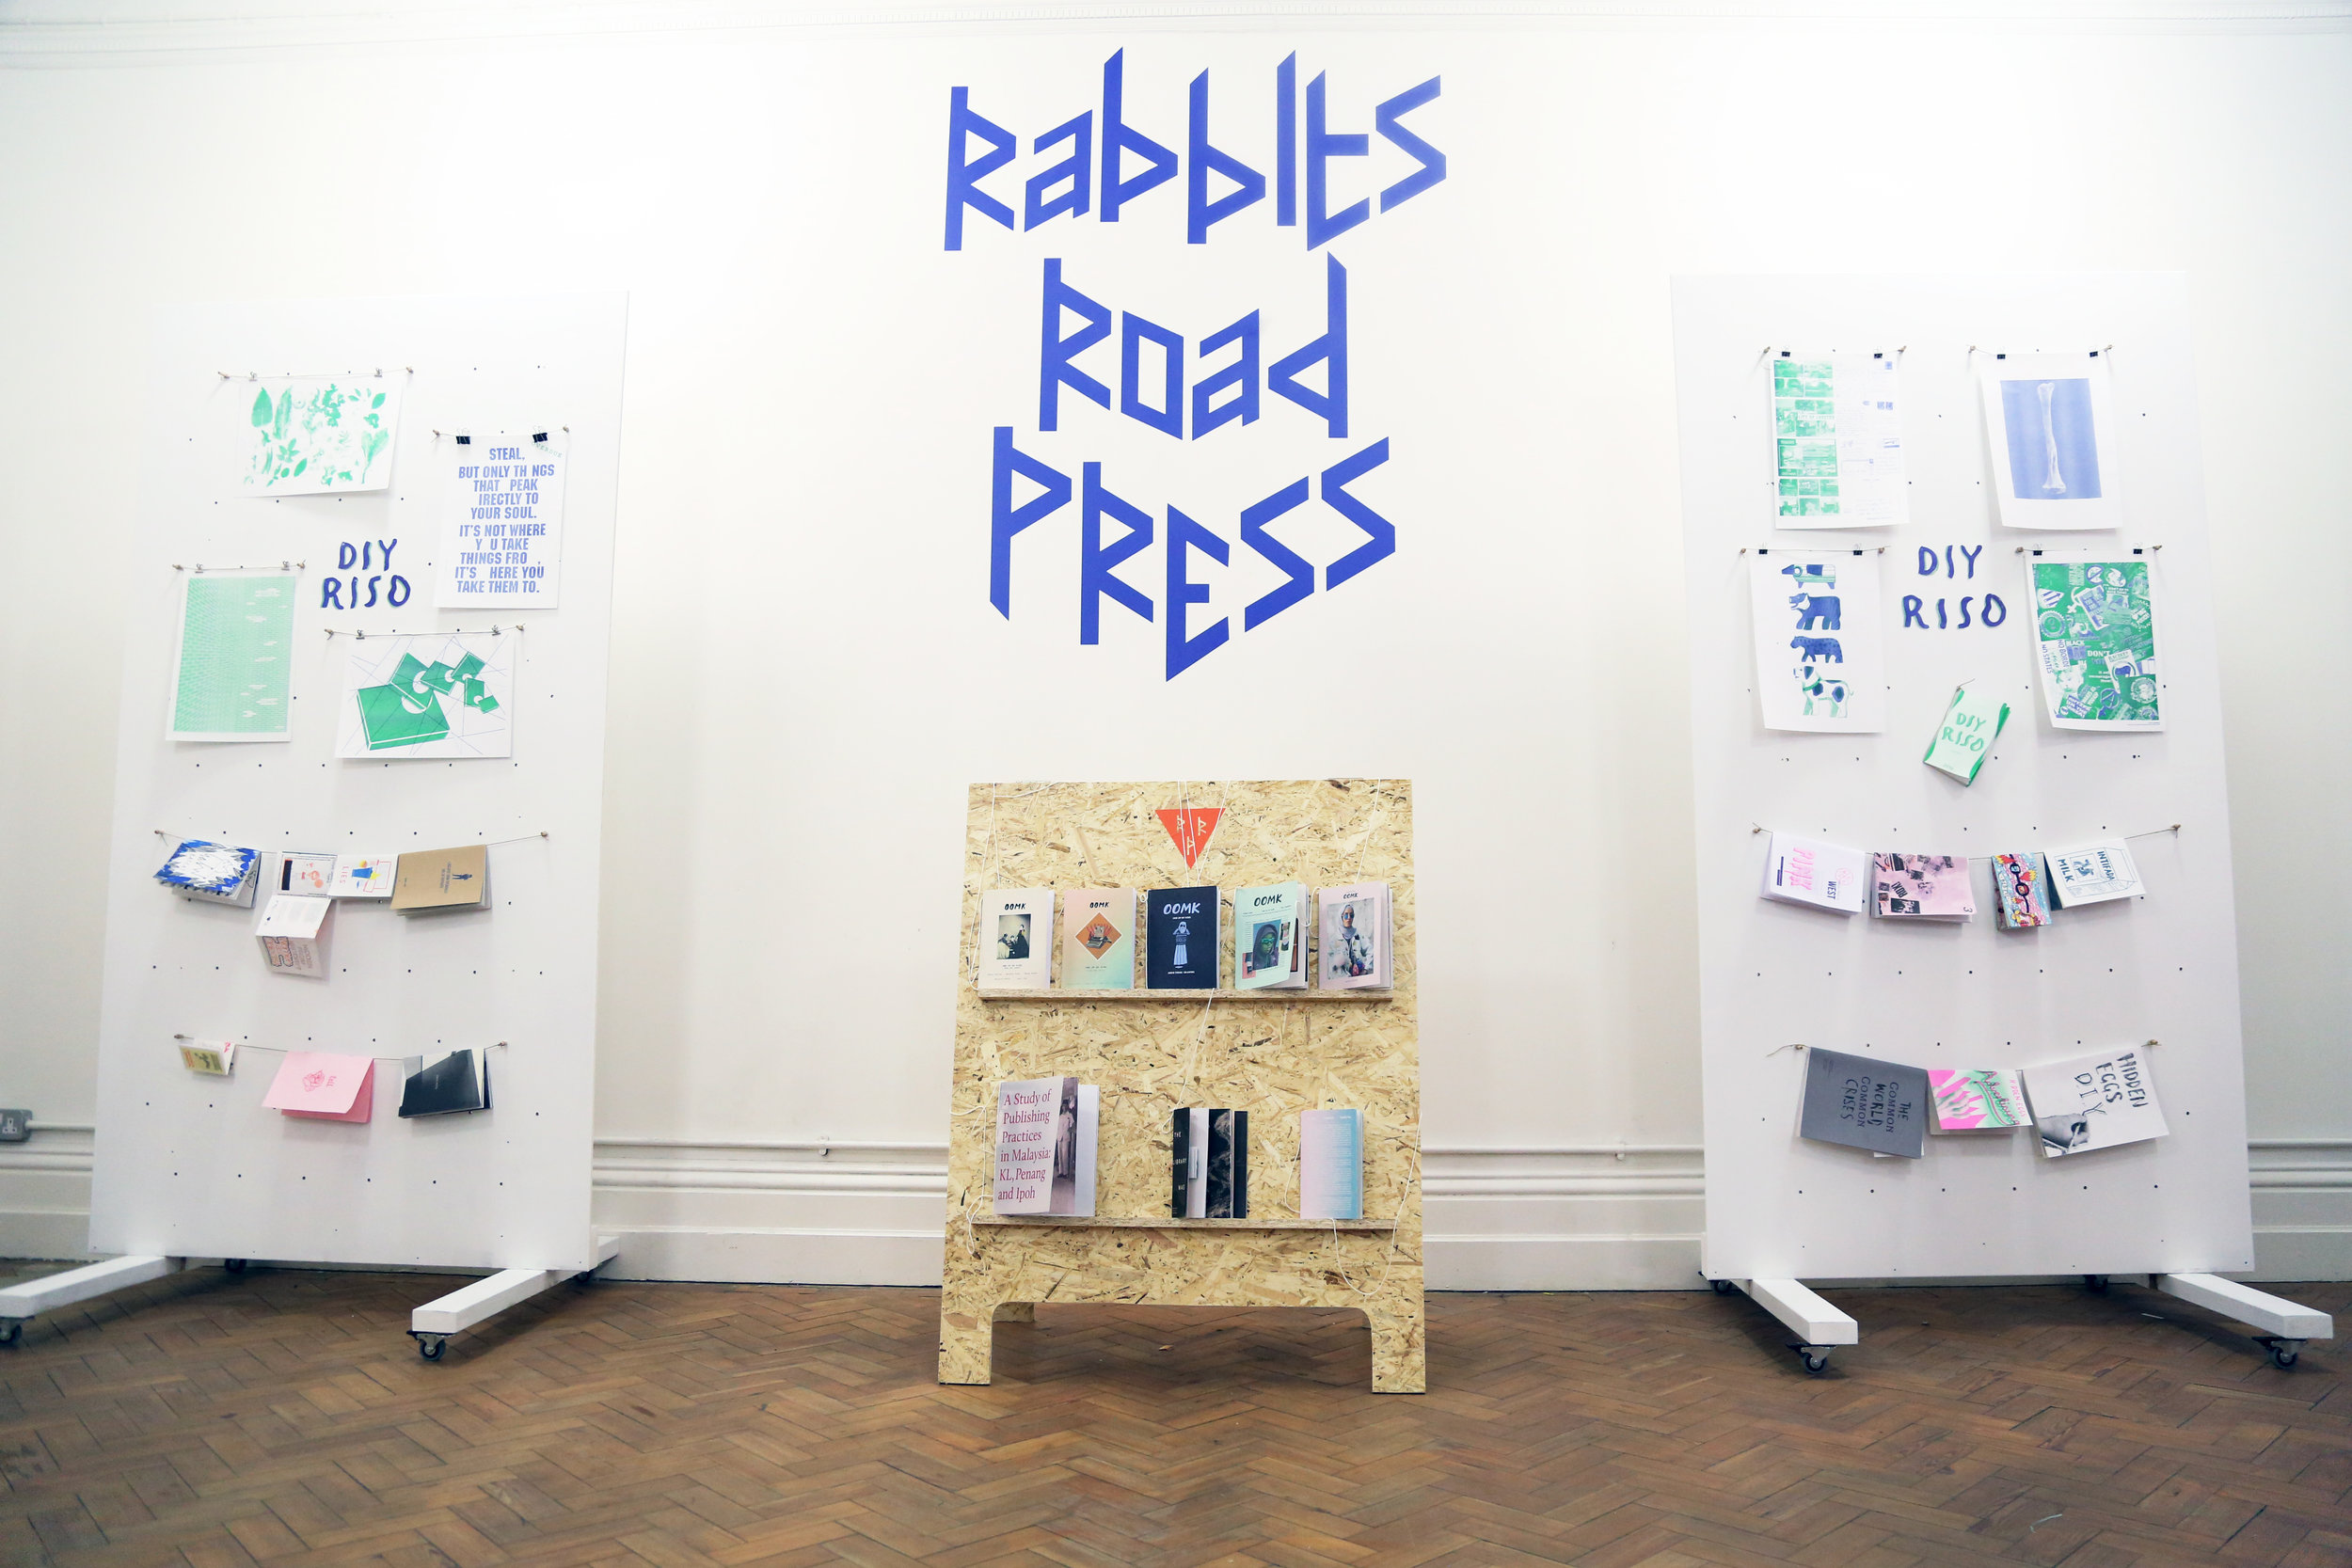 Rabbits Road Institute - OOMK are the current artists in residence with their project Rabbits Road Press.